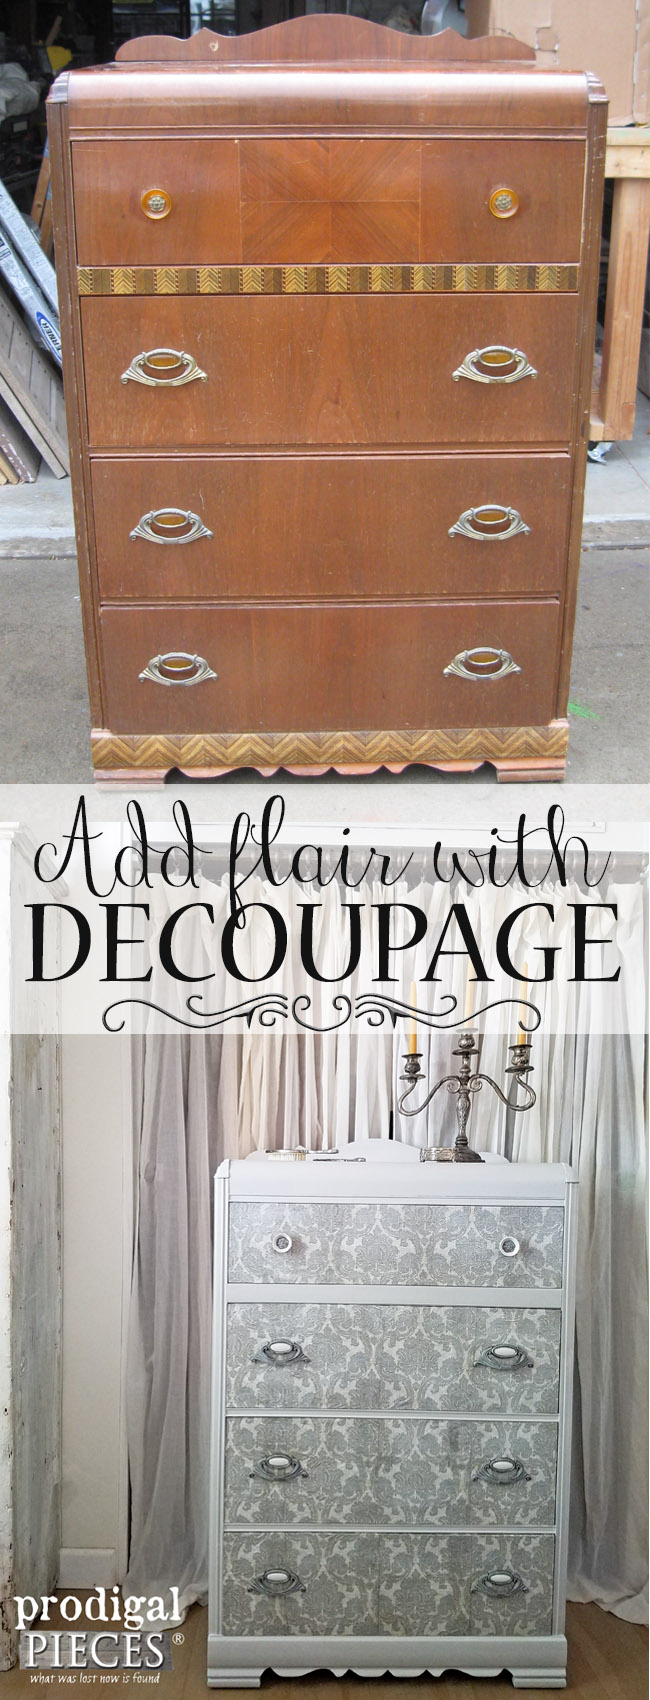 Add Flair to Your Furniture with Decoupage ~ DIY Tutorial by Prodigal Pieces | www.prodigalpieces.com